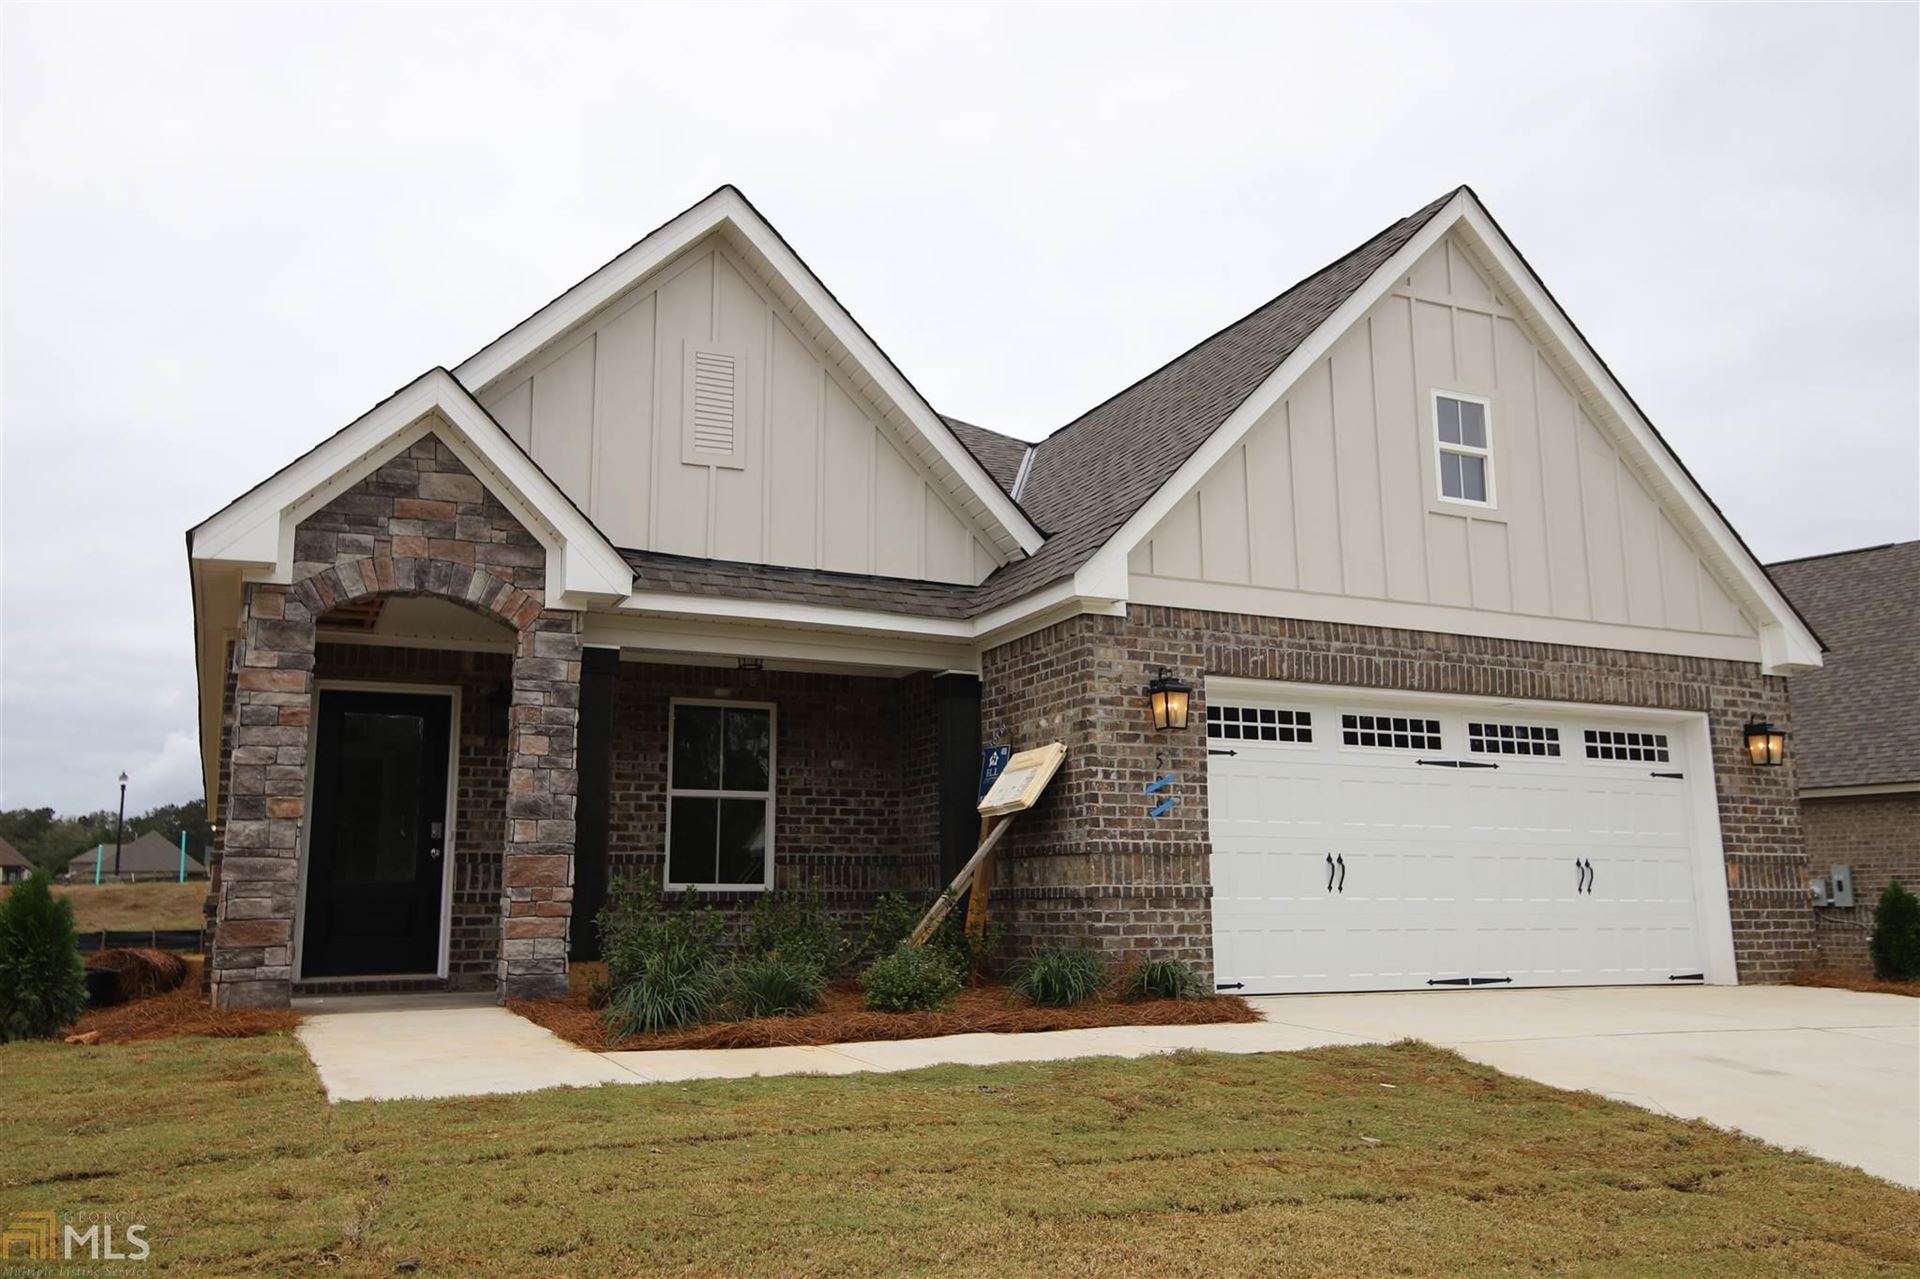 528 Lago Ct, LaGrange, GA 30241 - MLS#: 8828382